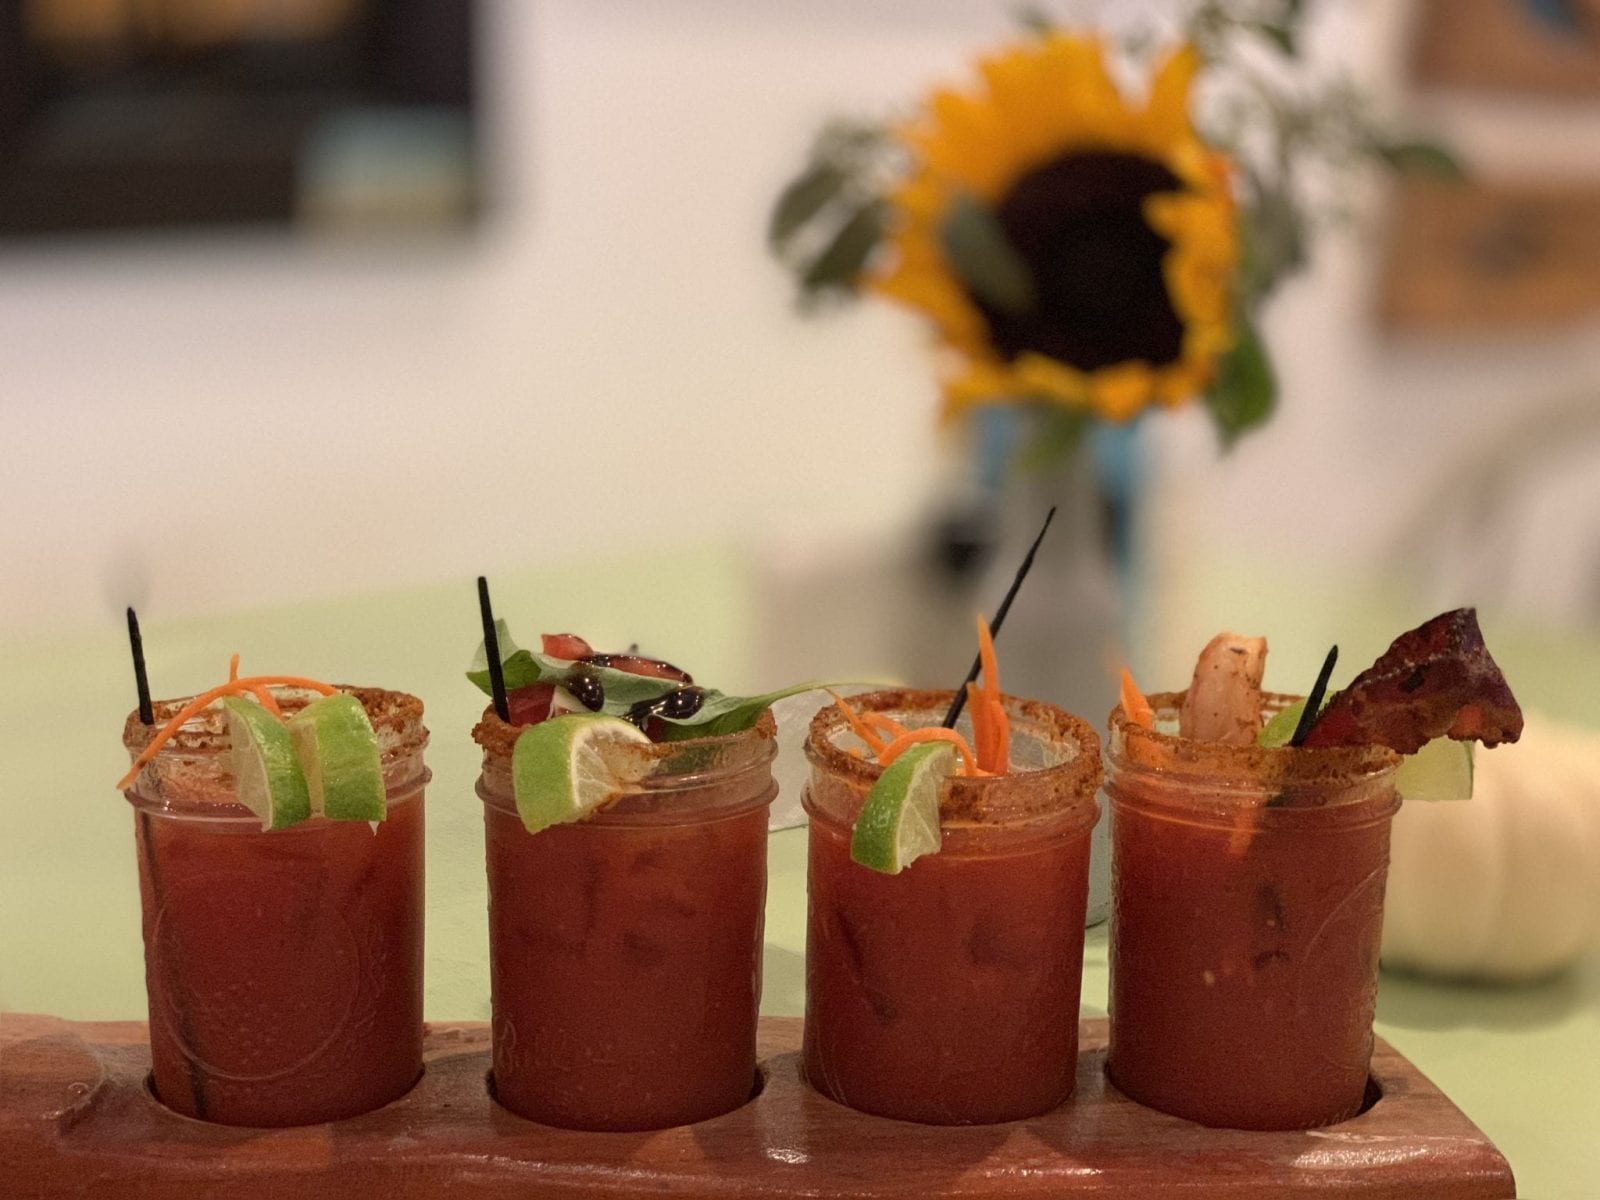 This is a close up of a Bloody Mary flight at Simple Eats in Virginia Beach.